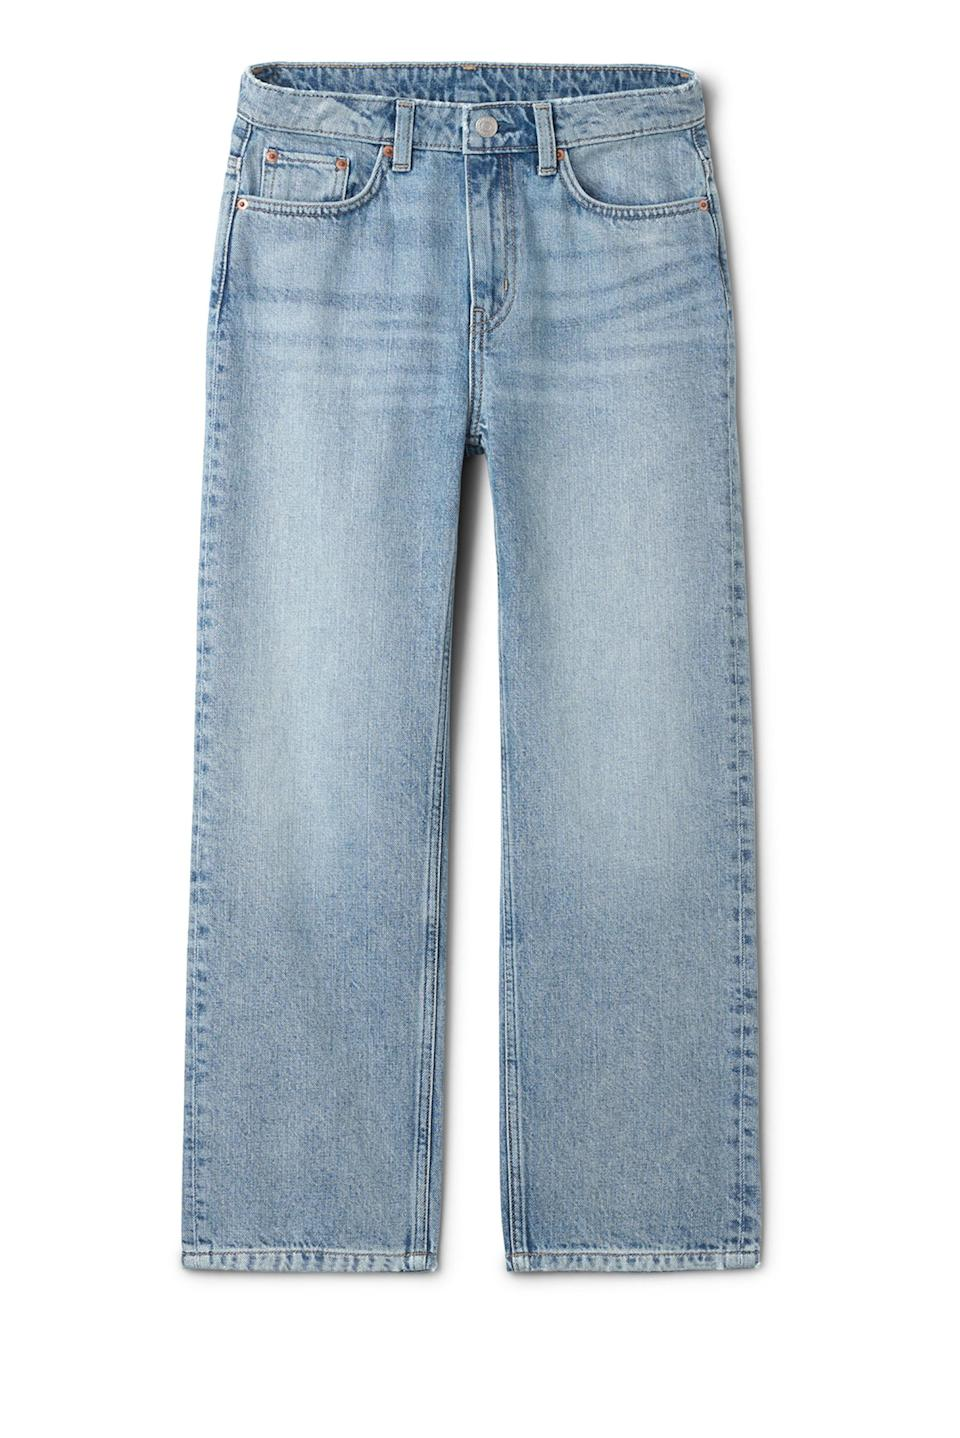 """<p>If you struggle to bag a pair of decent jeans on the high street then make sure to head over to Weekday. Trust us, the Scandi fashion house serves up great denim. <em><a href=""""https://www.weekday.com/en_gbp/sale/women/jeans/product.voyage-wow-blue-jeans-blue.0444045001.html"""" rel=""""nofollow noopener"""" target=""""_blank"""" data-ylk=""""slk:Shop now"""" class=""""link rapid-noclick-resp"""">Shop now</a>.</em> </p>"""